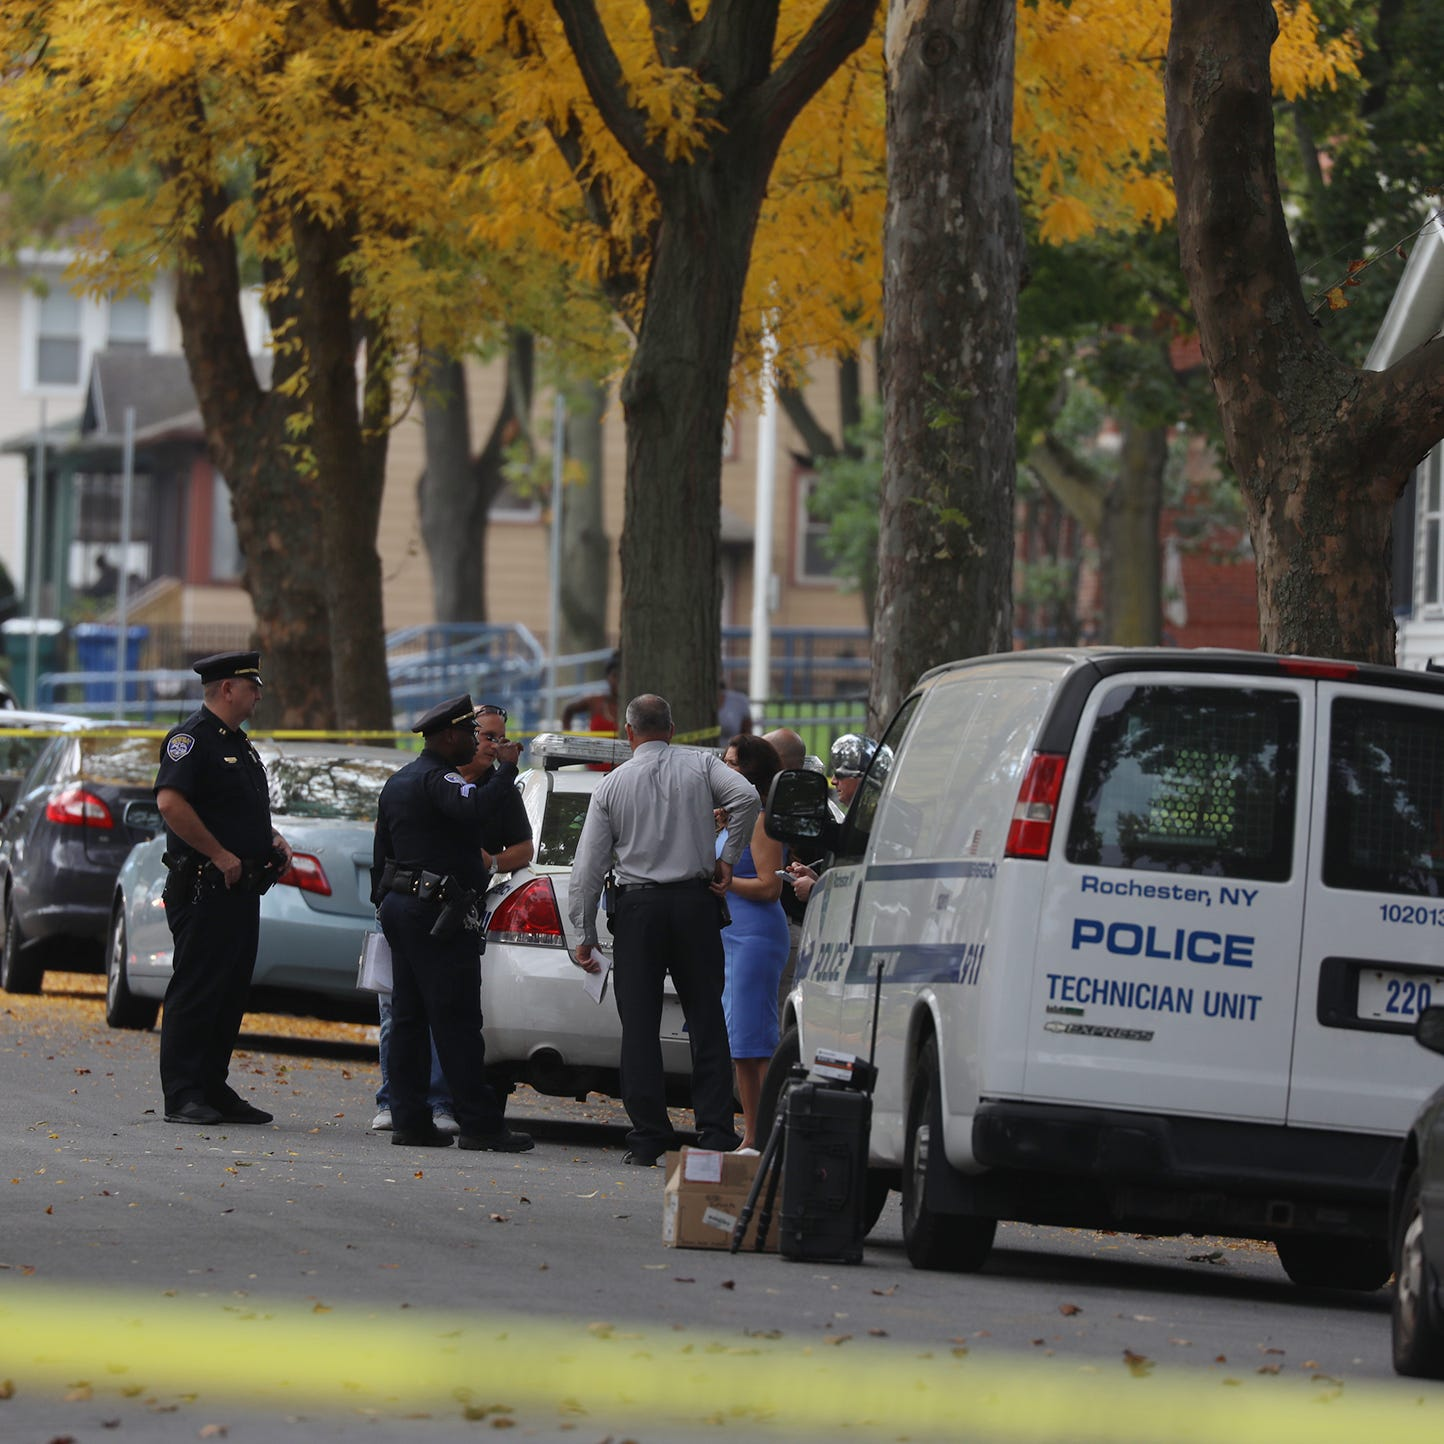 Police identify victims shot in Rochester shooting spree